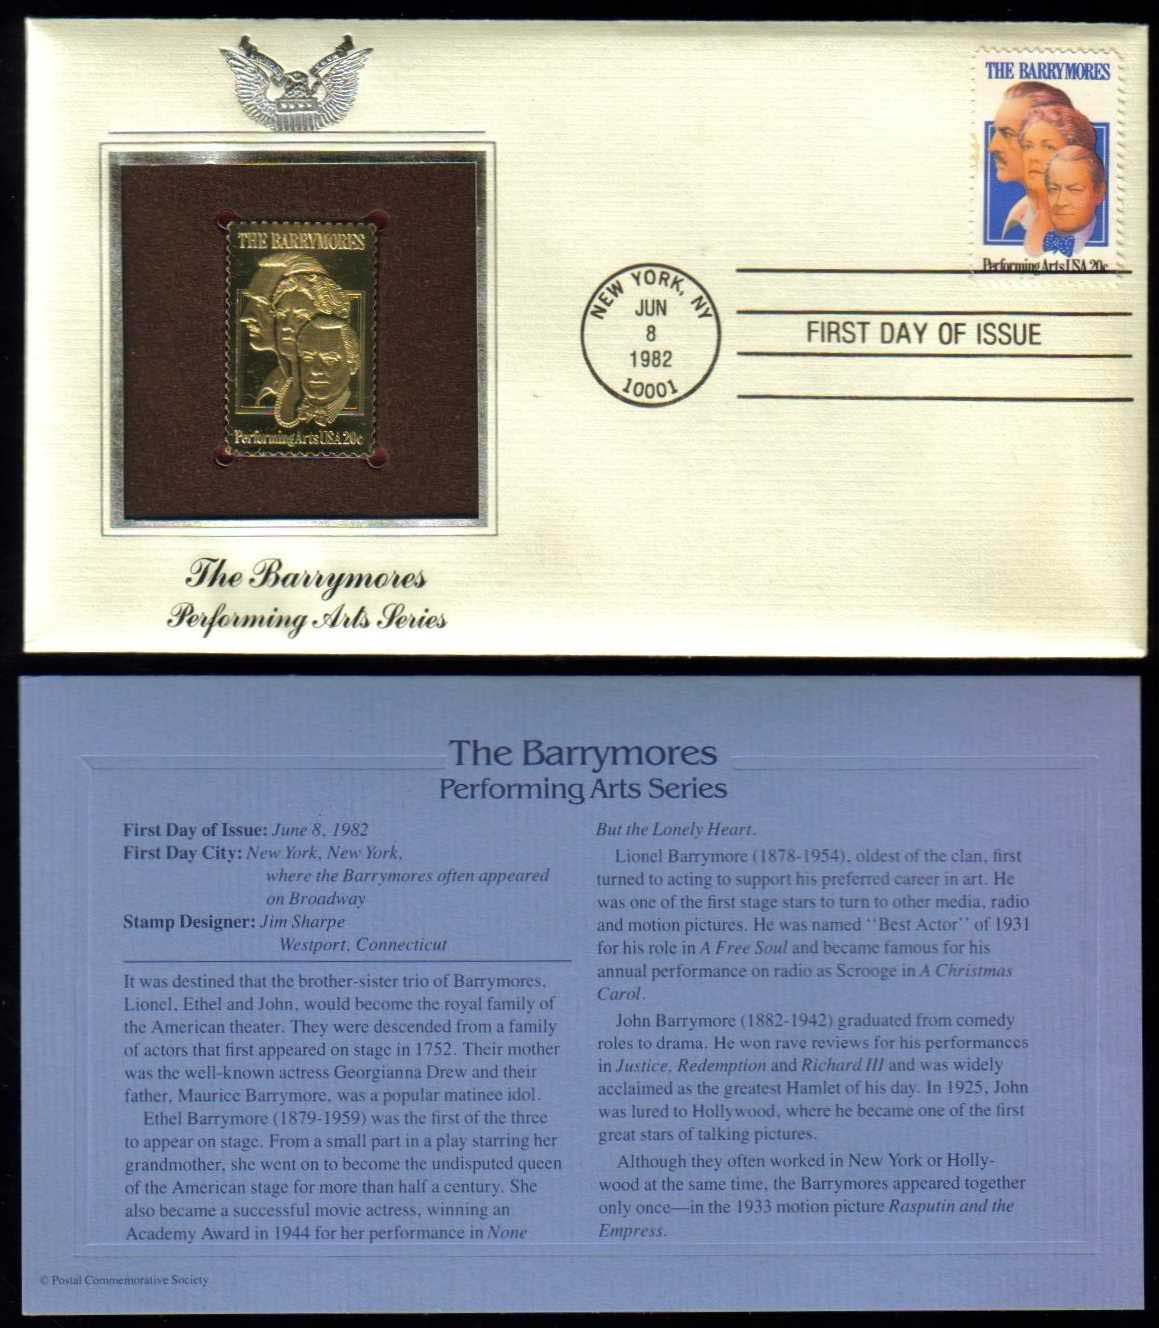 Scott 2012 Golden Replica (22Kt) unaddressed FDC <p> <a href=&quot;/images/USA-Scott-2012-Gold.jpg&quot;><font color=green><b>View the image</a></b></font>